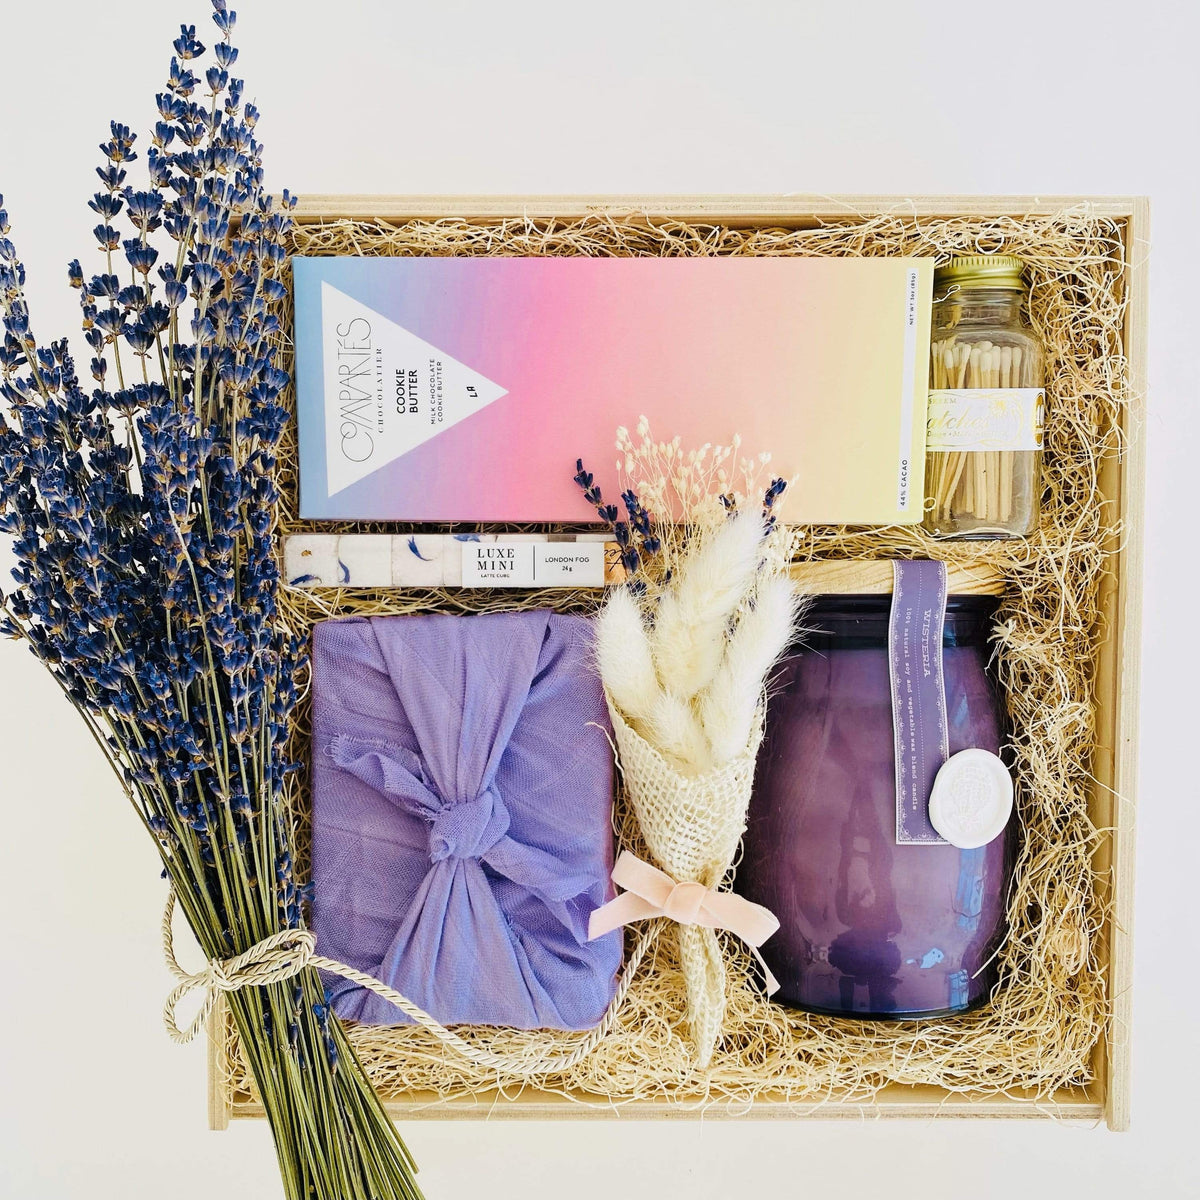 Giftsmith Featured The Wisteria Wish Mother's Day Pamper Spa London Fog Tea Candle